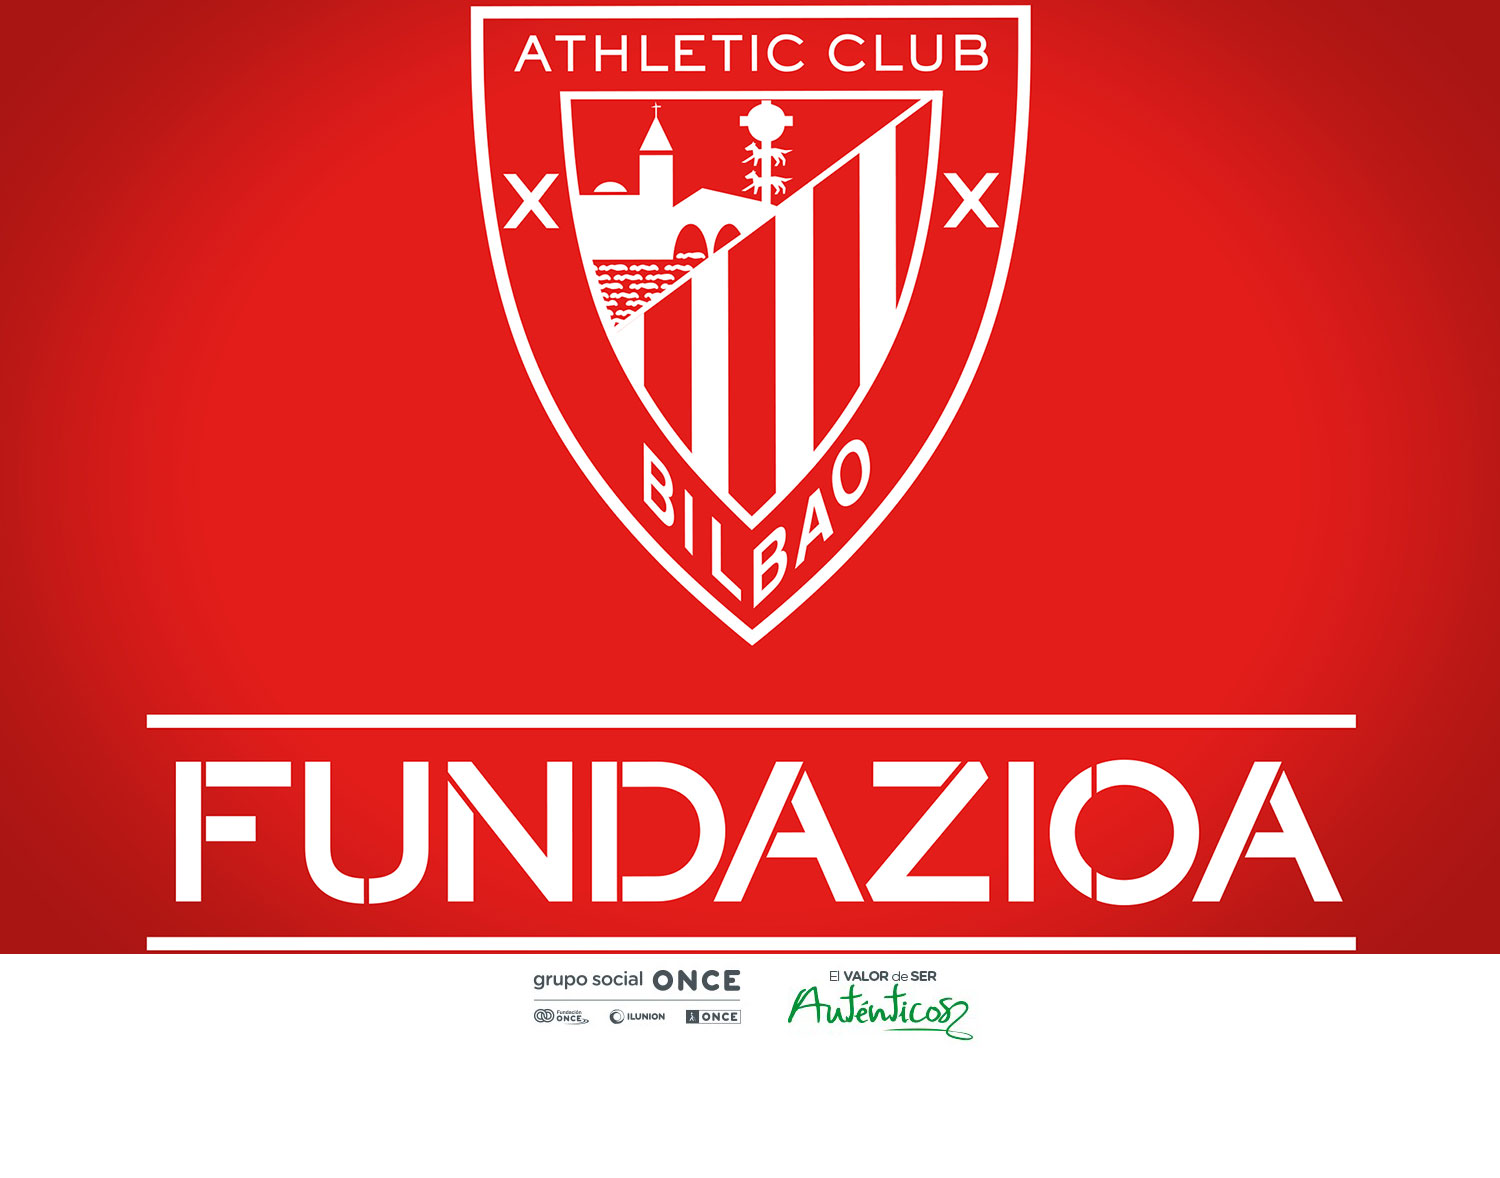 La Fundación Athletic Club nominada al Cascabel de Oro